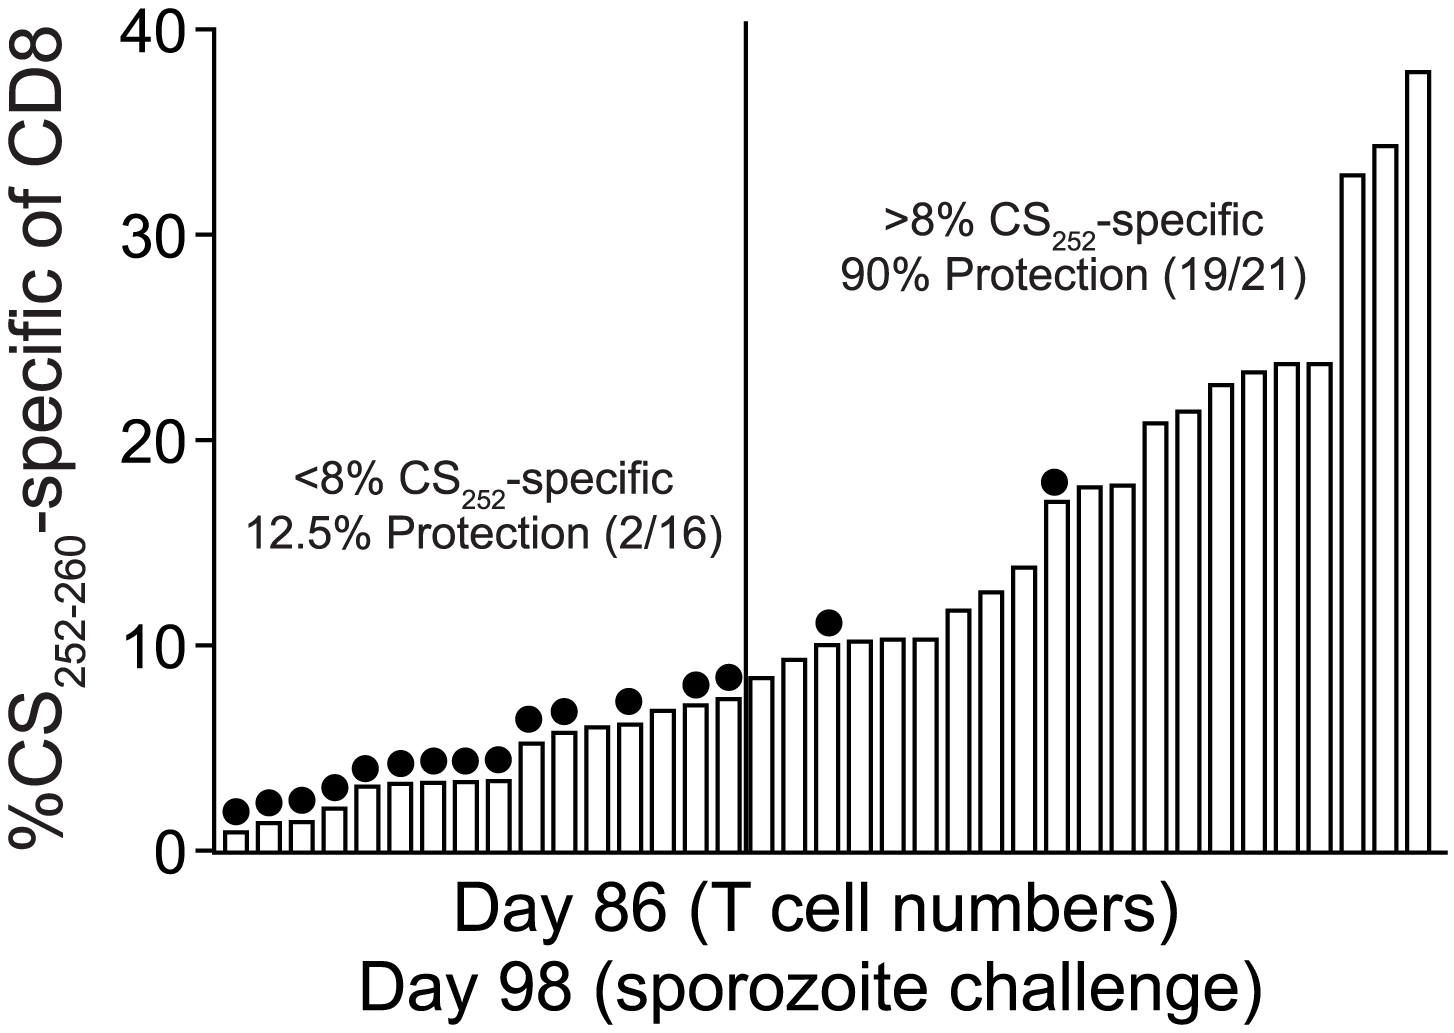 Sterilizing anti-<i>P. berghei</i> sporozoite immunity in BALB/c mice is associated with memory CD8 T cell responses of single antigenic-specificity that exceed 8% of all circulating CD8 T cells.